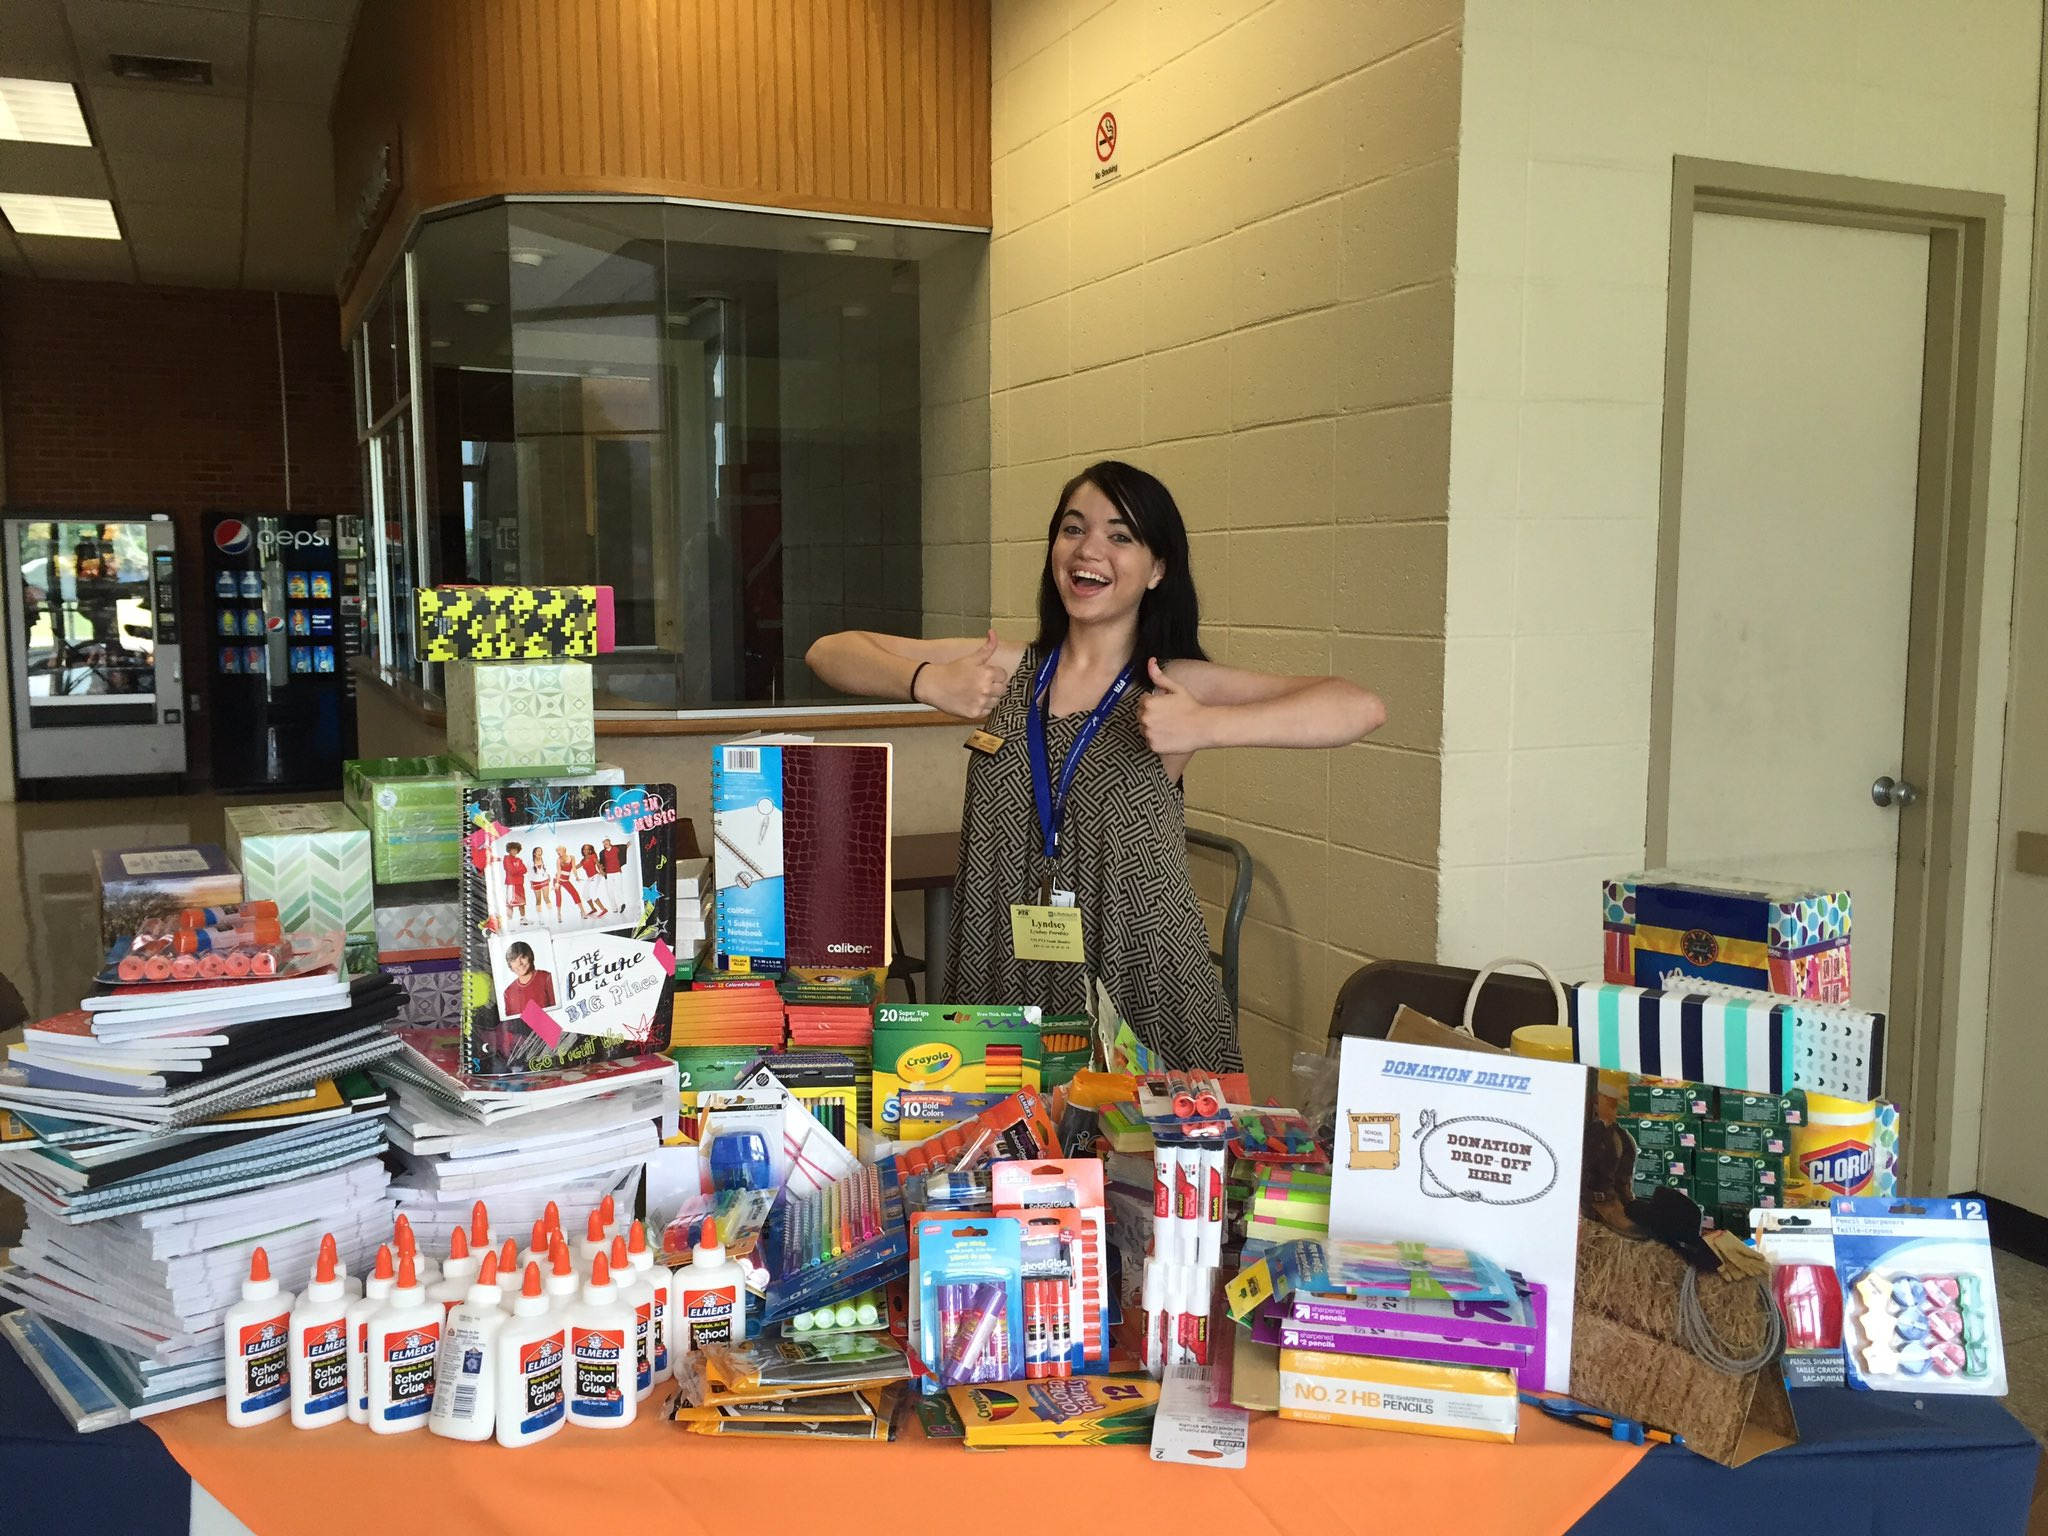 Our great @nyspta youth board member, organized amazing drive for local school! https://t.co/fhNCad9WBA